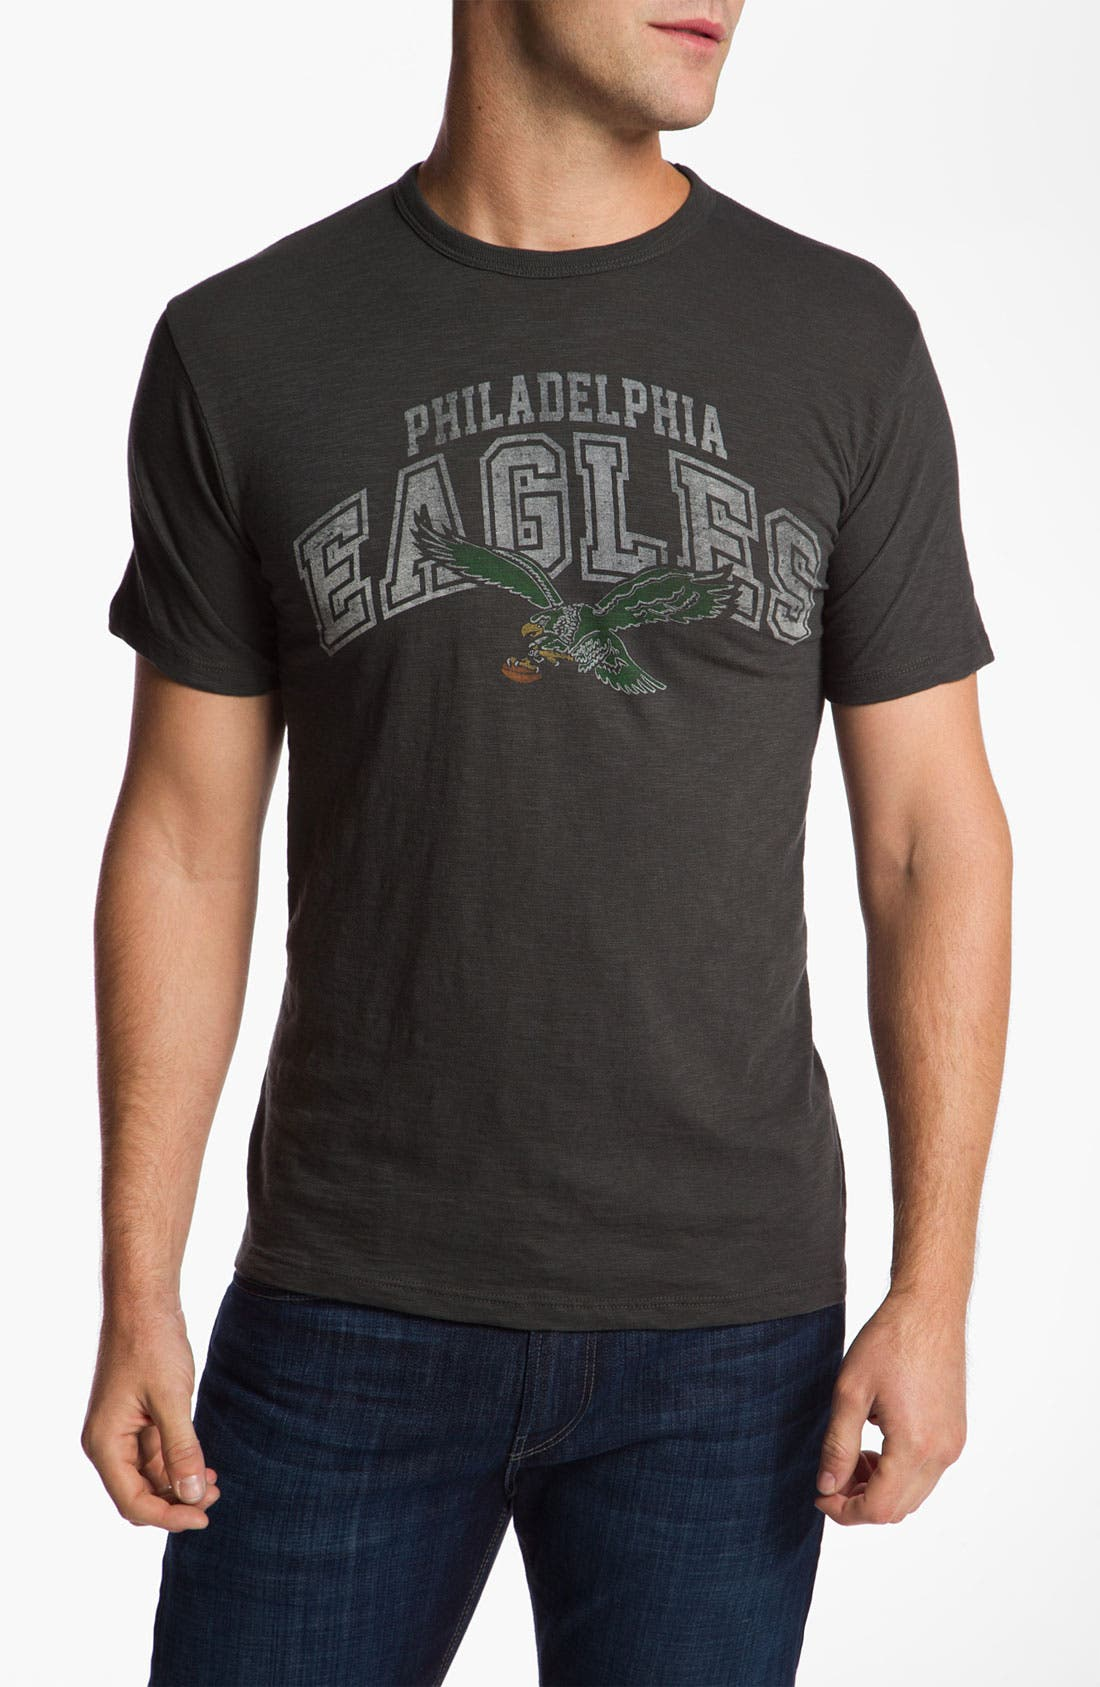 Alternate Image 1 Selected - Banner 47 'Philadelphia Eagles' T-Shirt